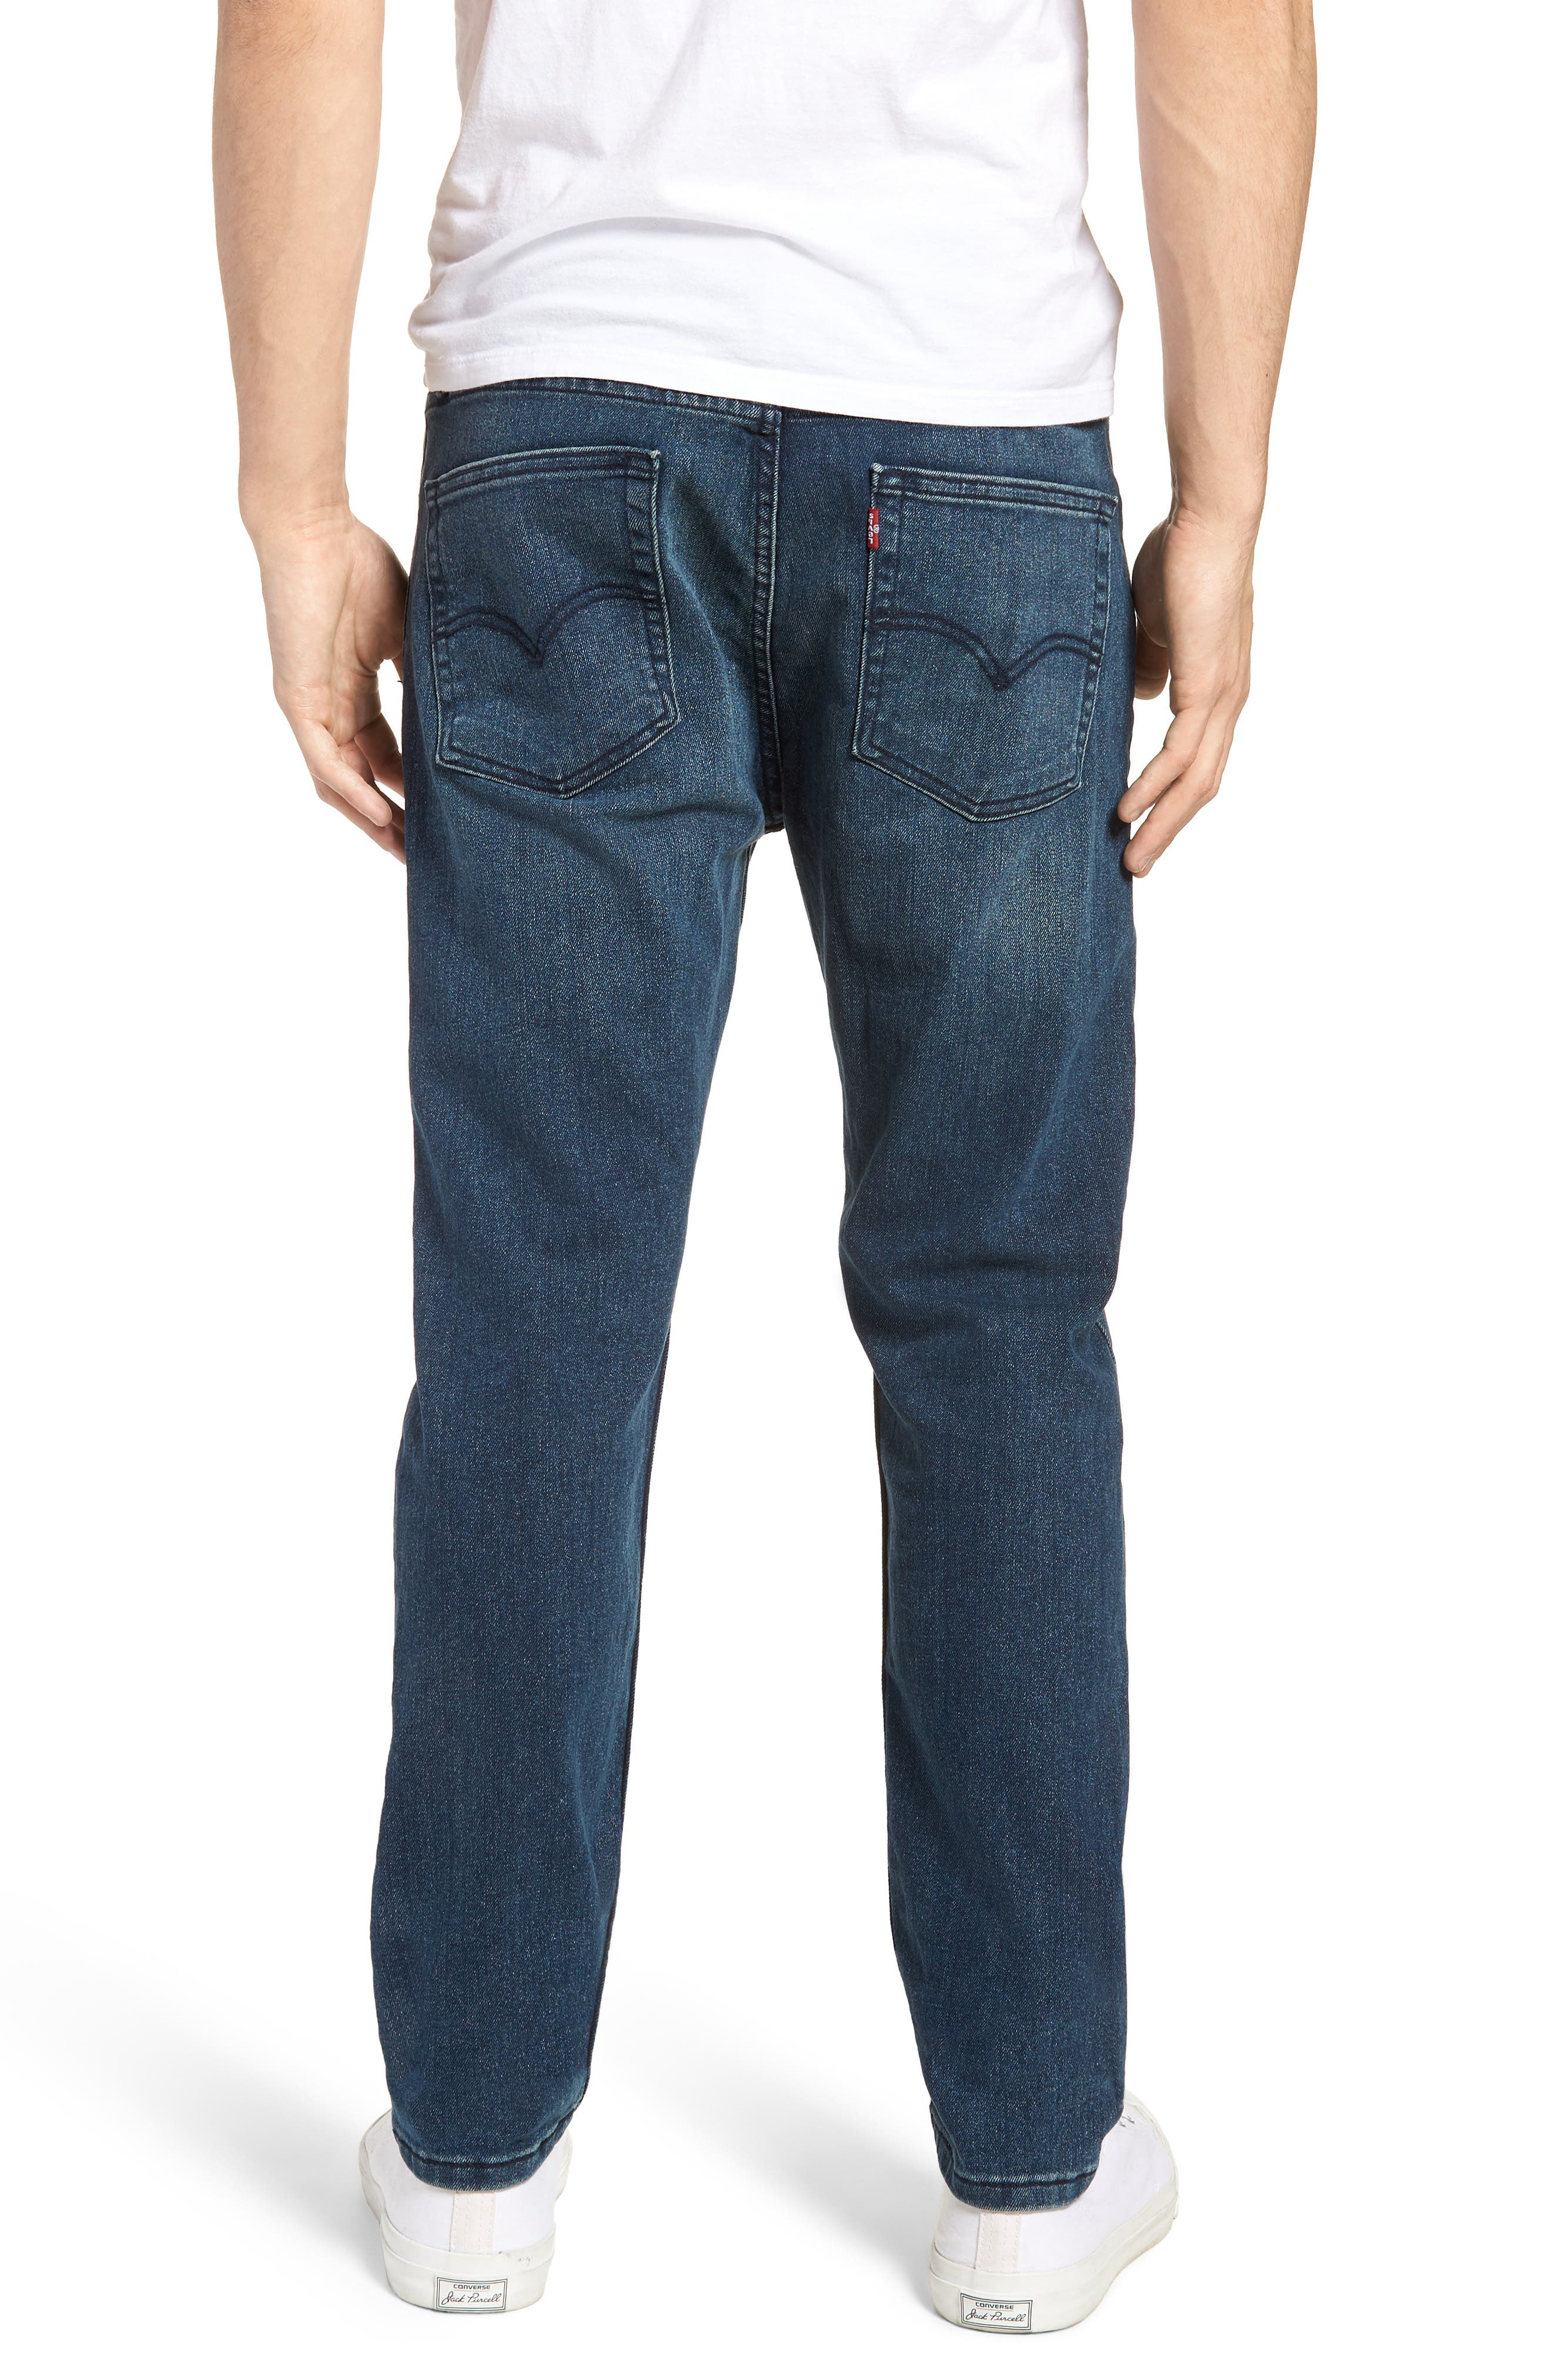 510<sup>™</sup> Skinny Fit Jeans,                             Alternate thumbnail 2, color,                             408